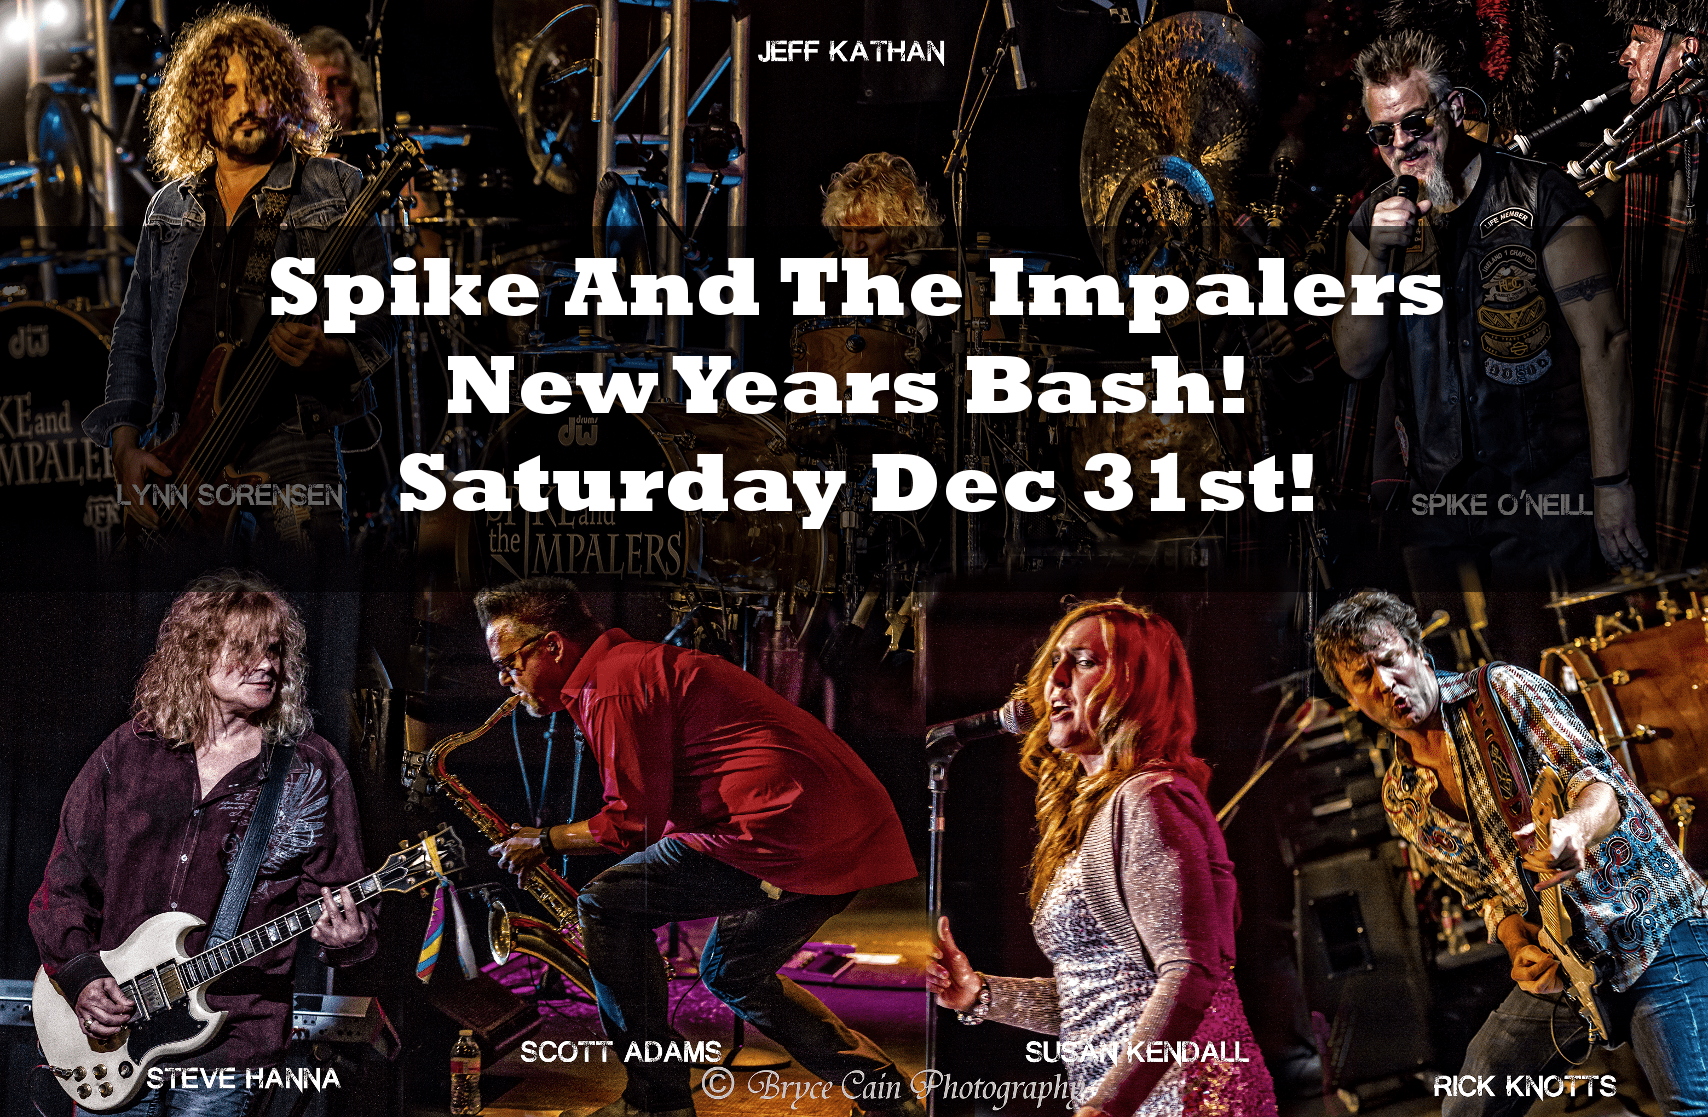 Spike & The Impalers New Year's Eve Bash Clearwater Casino Resort